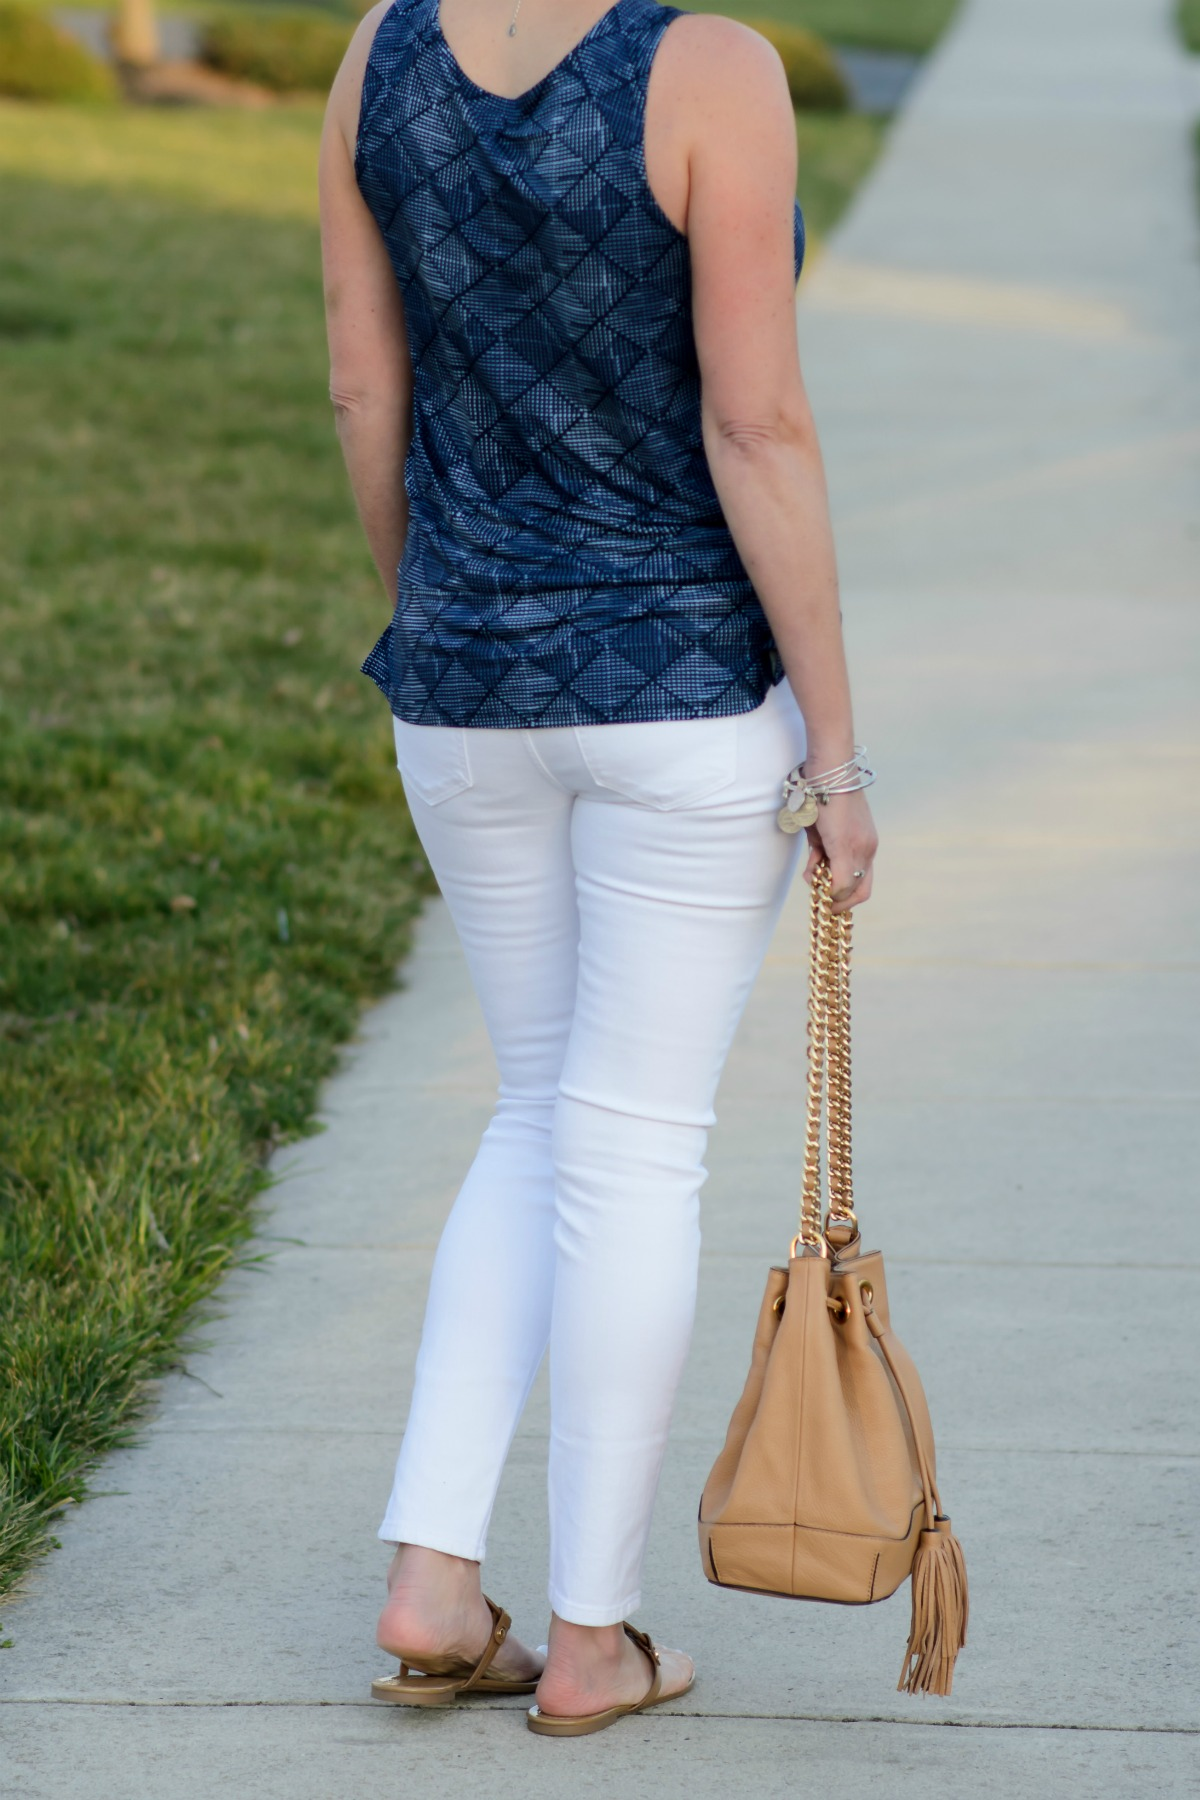 Spring fashion with this relaxed split hem printed top from Old Navy!